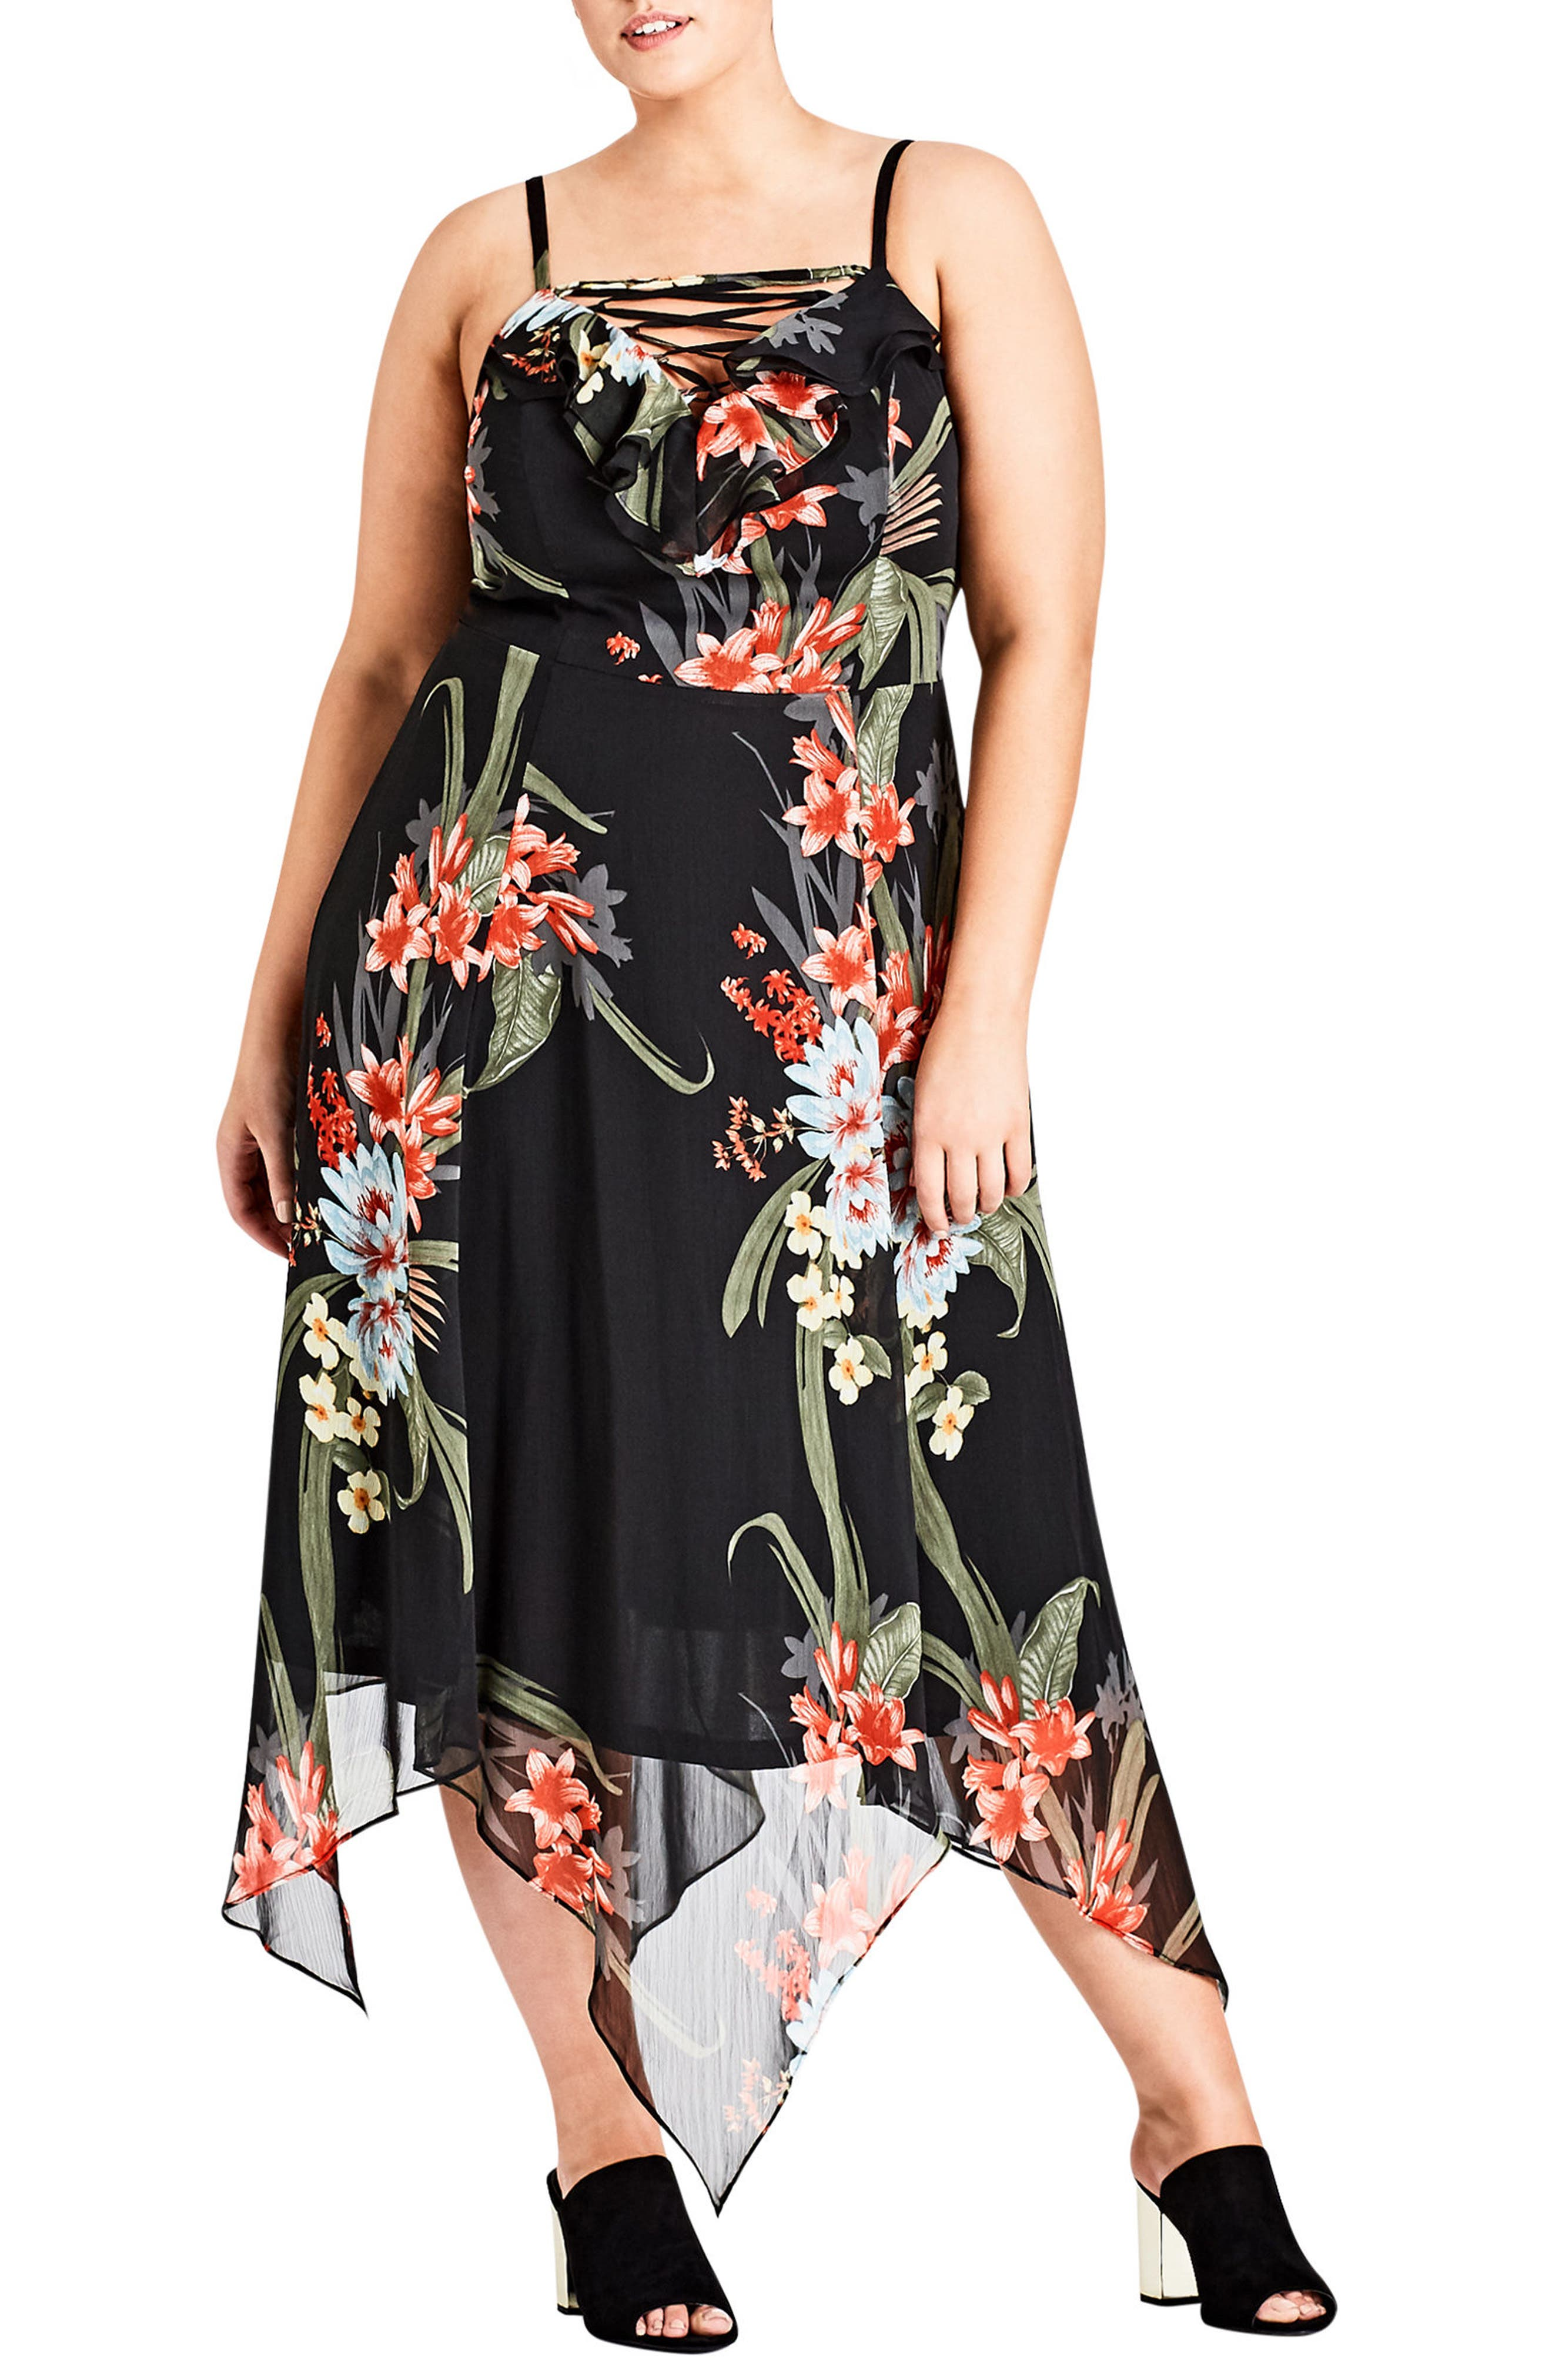 Floridity Sundress,                             Main thumbnail 1, color,                             Black